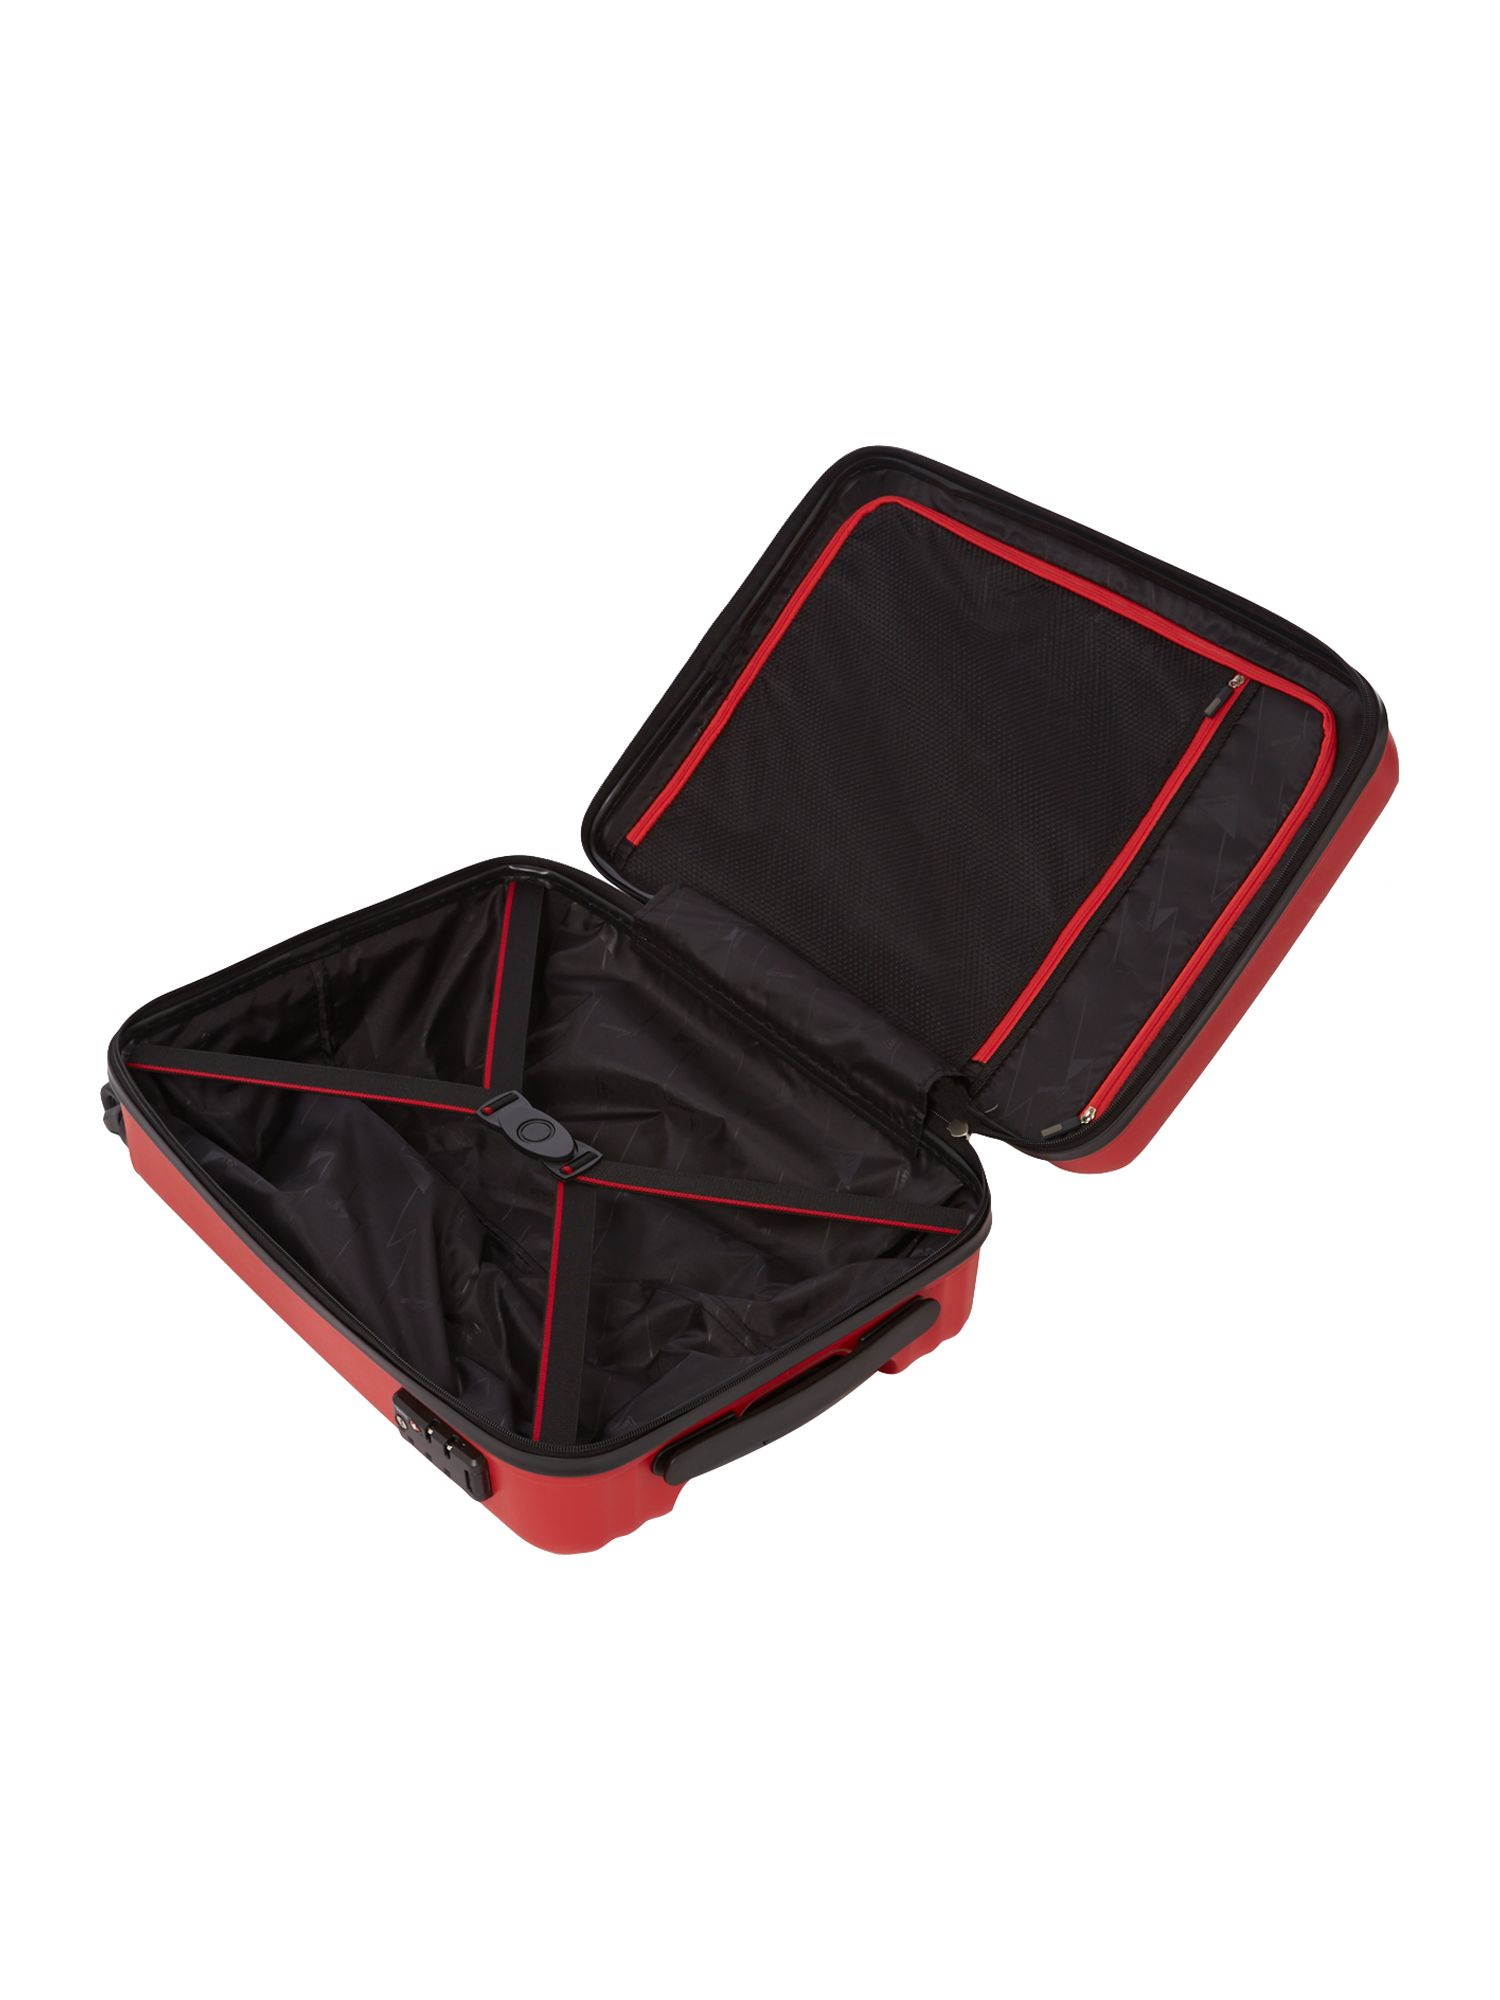 Moblite red 4 wheel cabin case